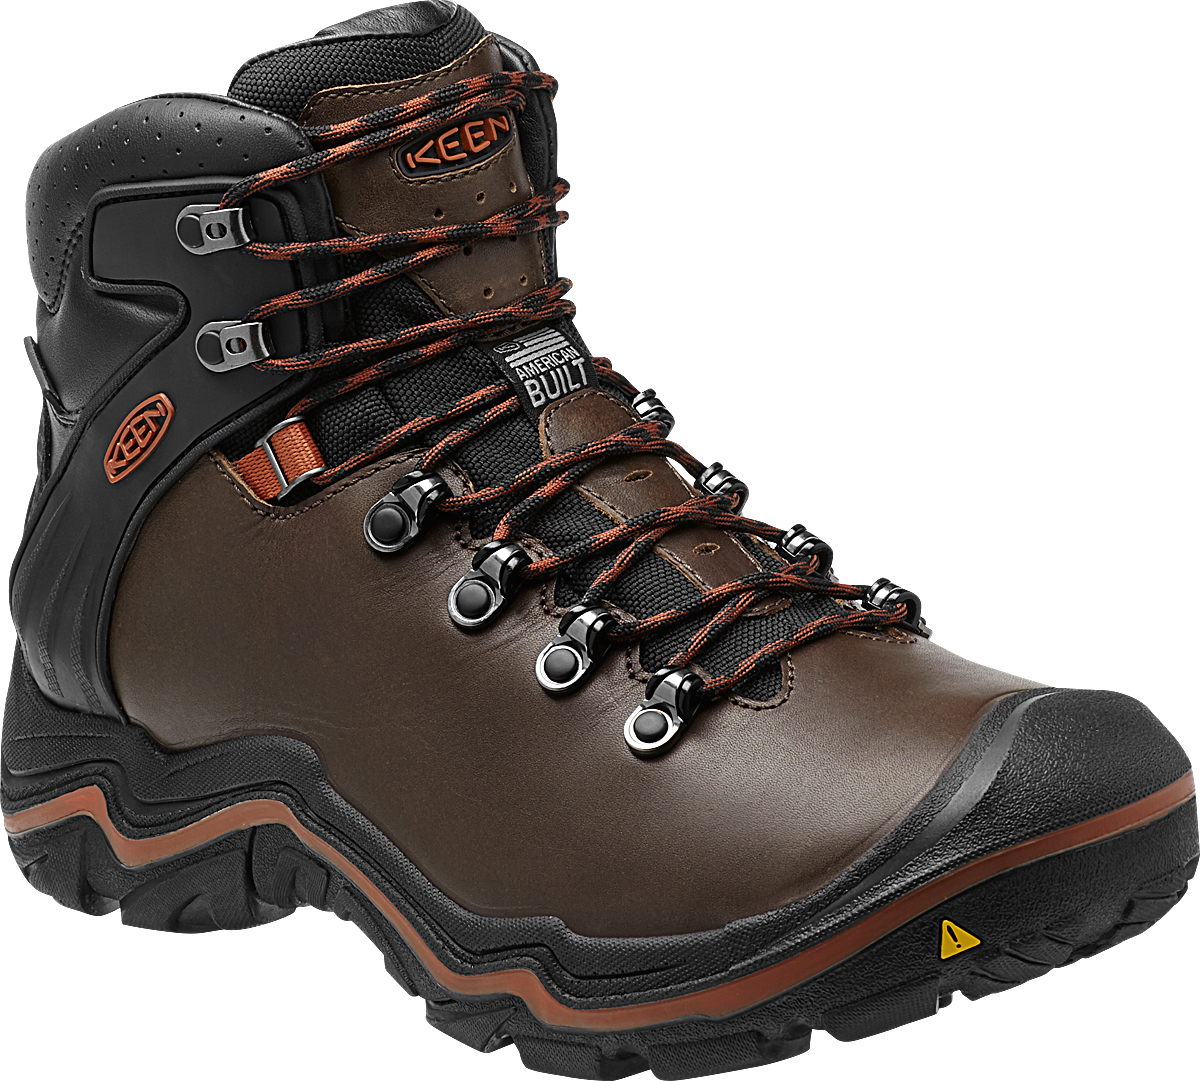 3d23c2f076f Keen Liberty Ridge Hiking Boots - Men's